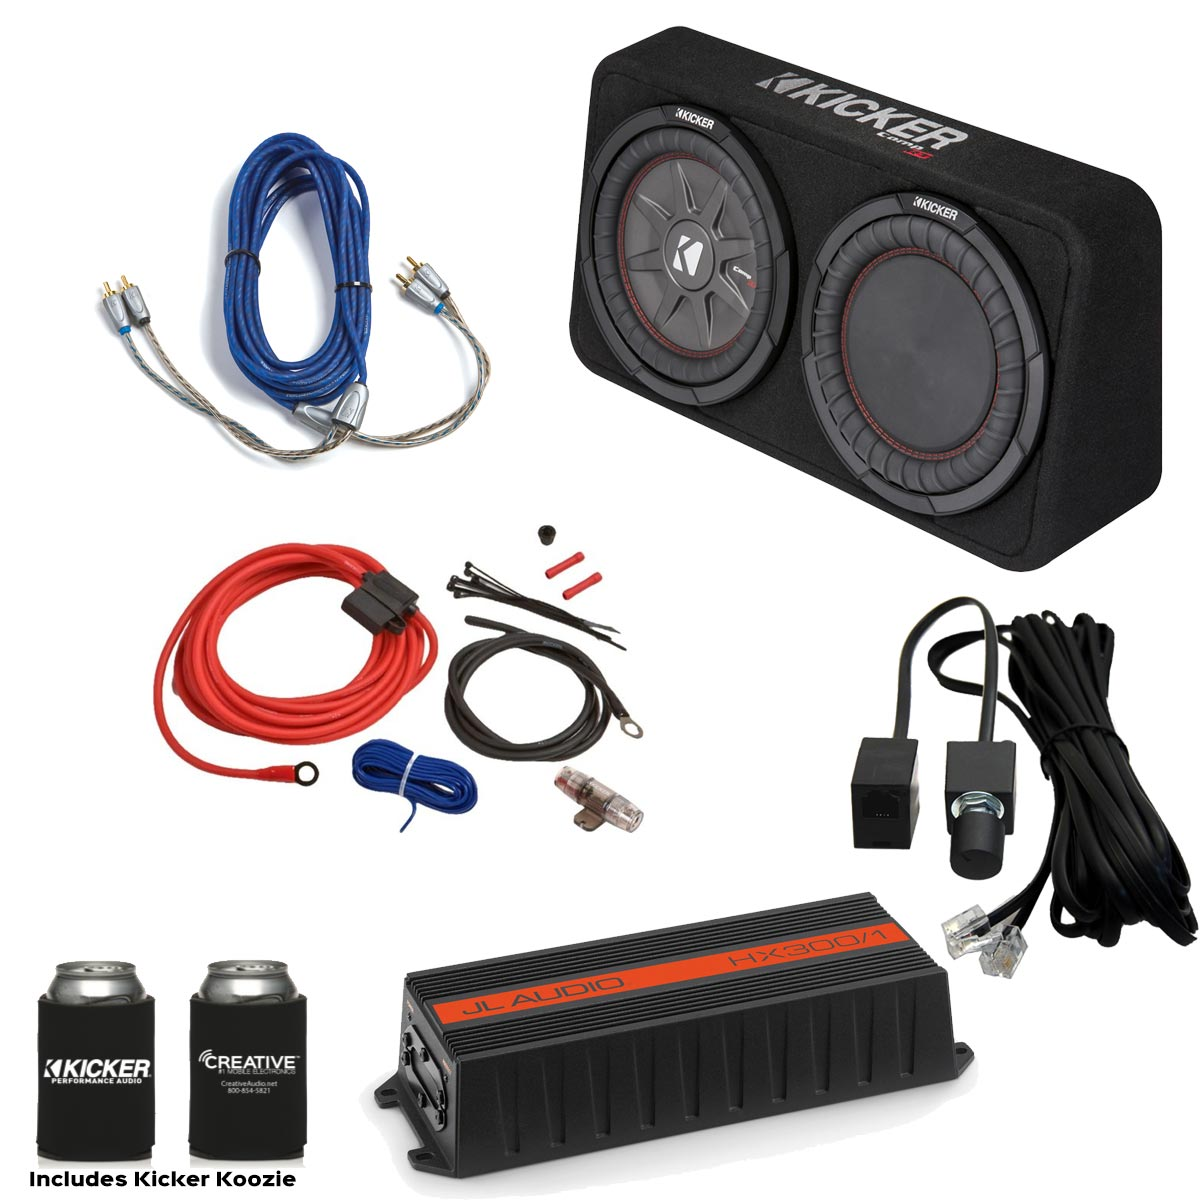 Jl Audio Subwoofer Wiring Kit Amps Wire Diagrams 10 Inch Rockford Fosgate Sub Diagram Hx300 1 300 Watt Amp Kicker Quot Comprt Loaded Subwoofers